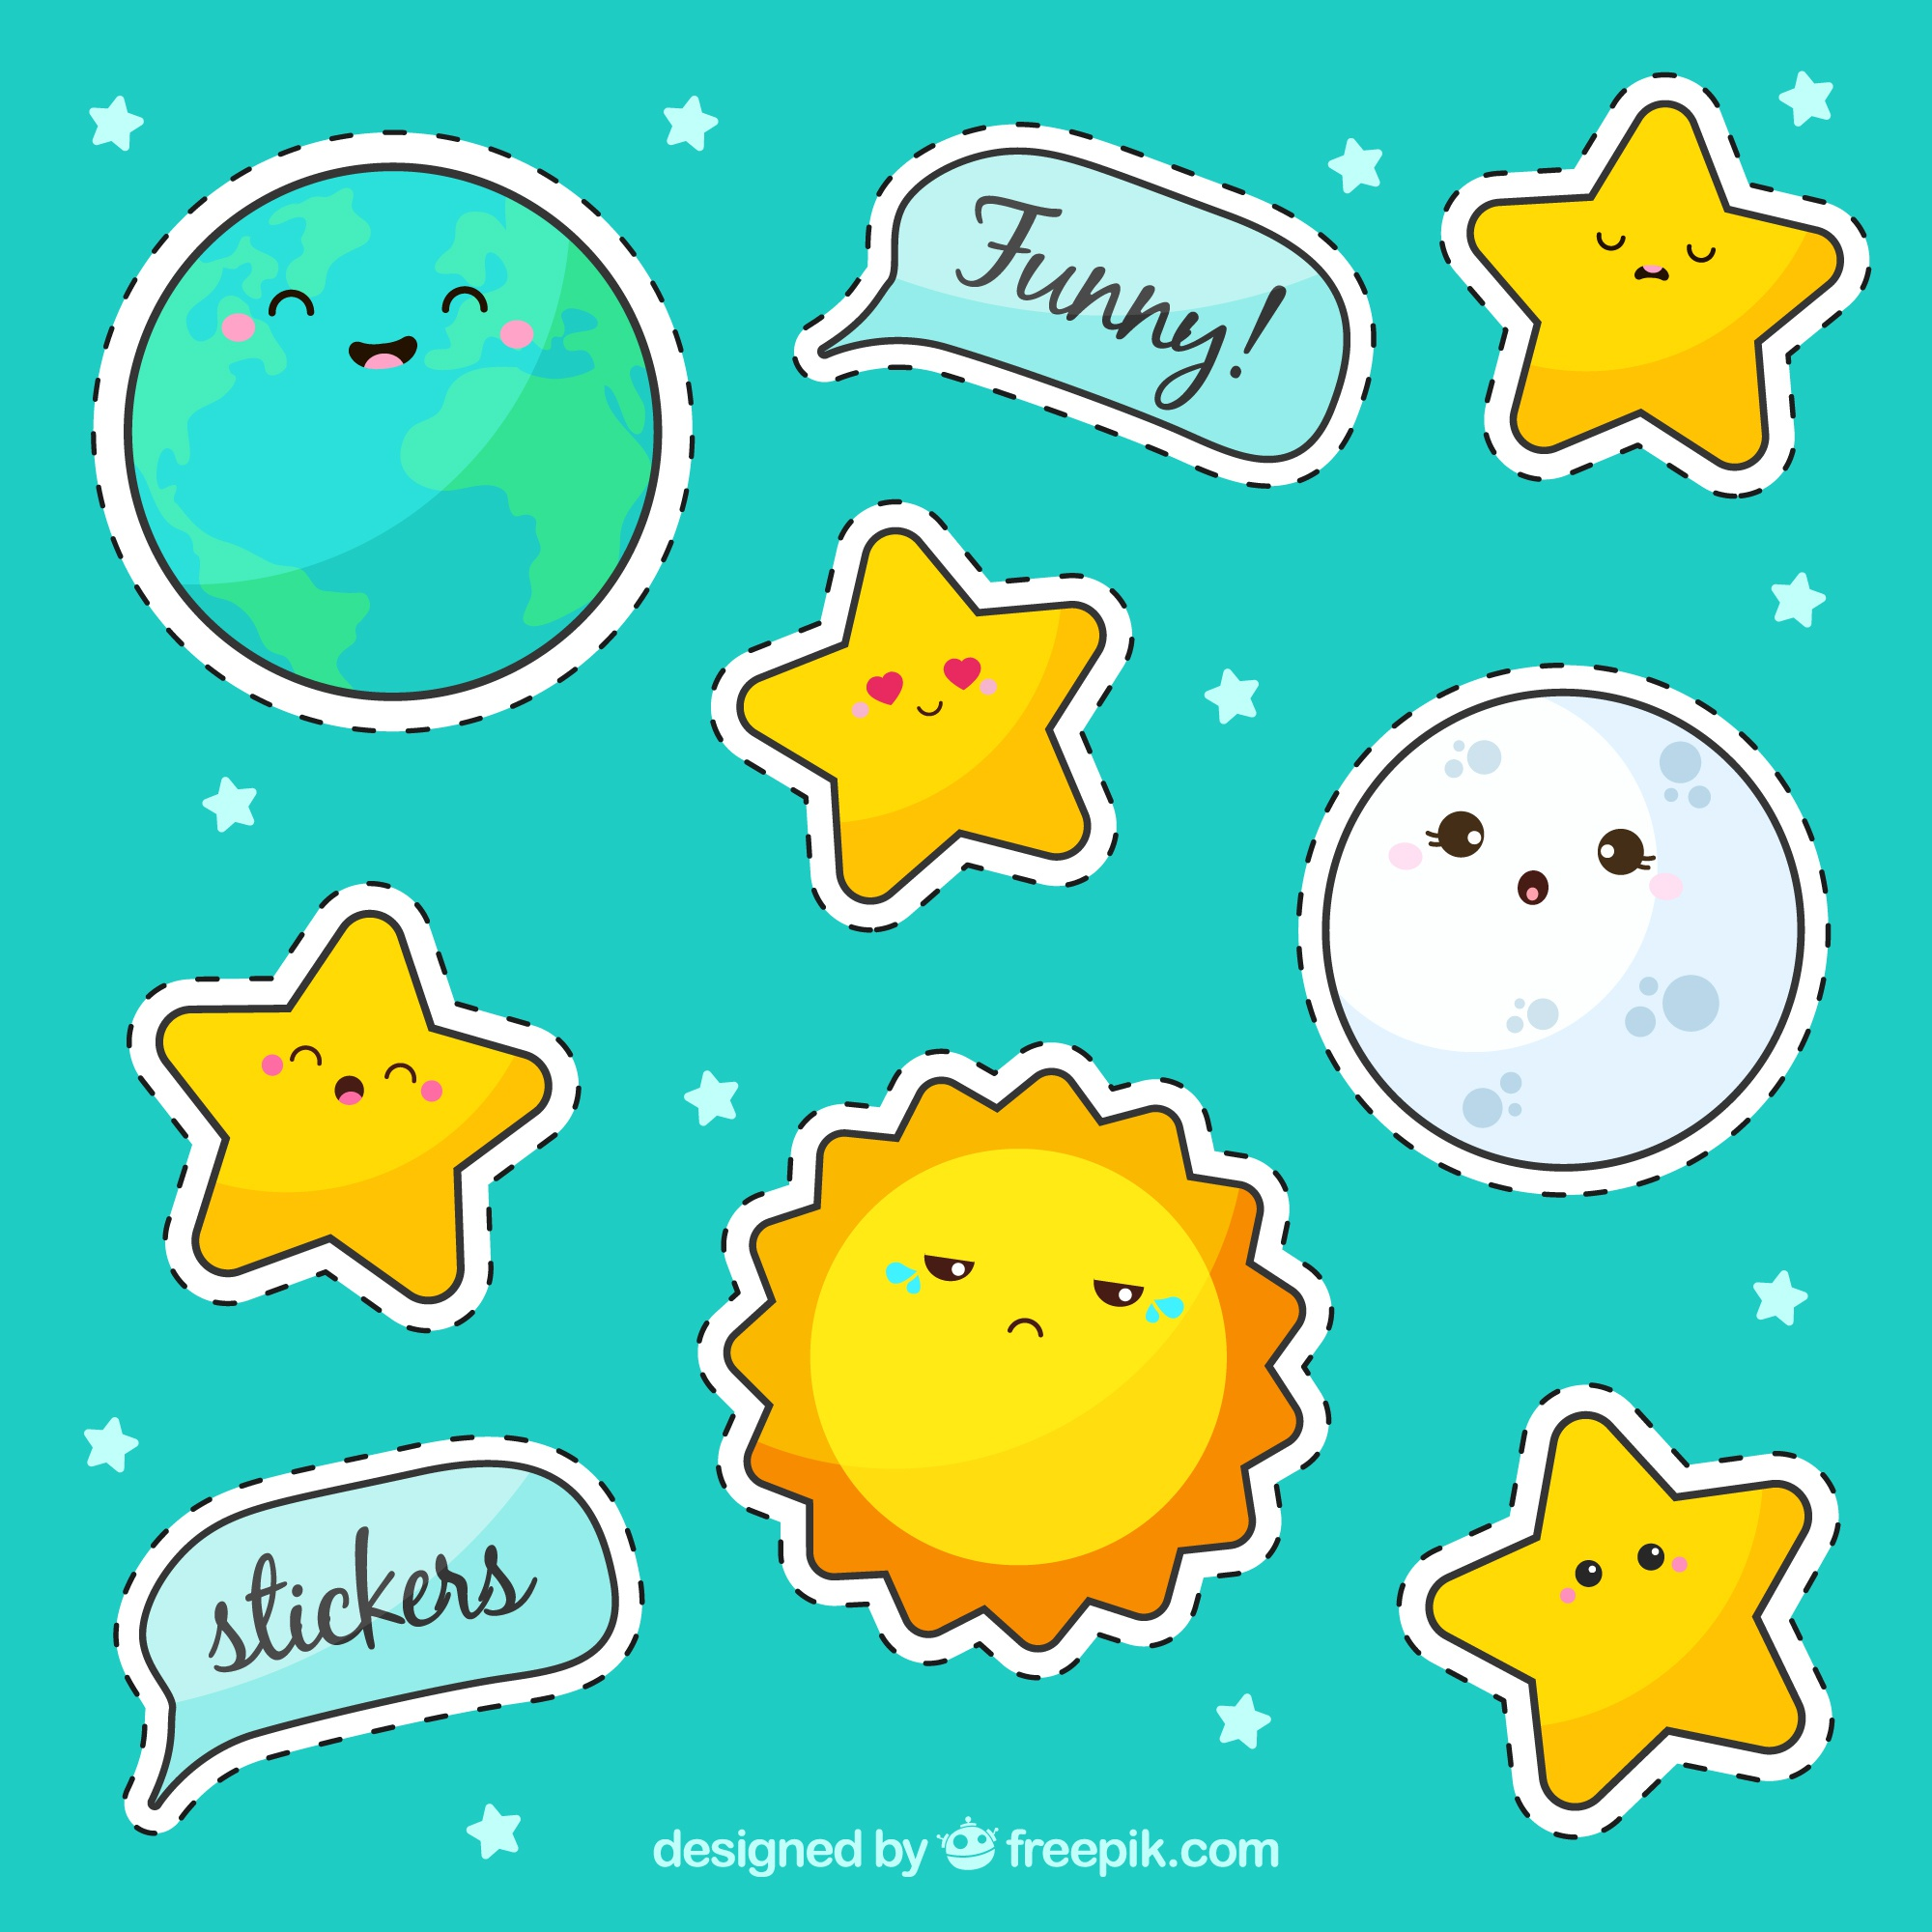 Sticker pack with stars